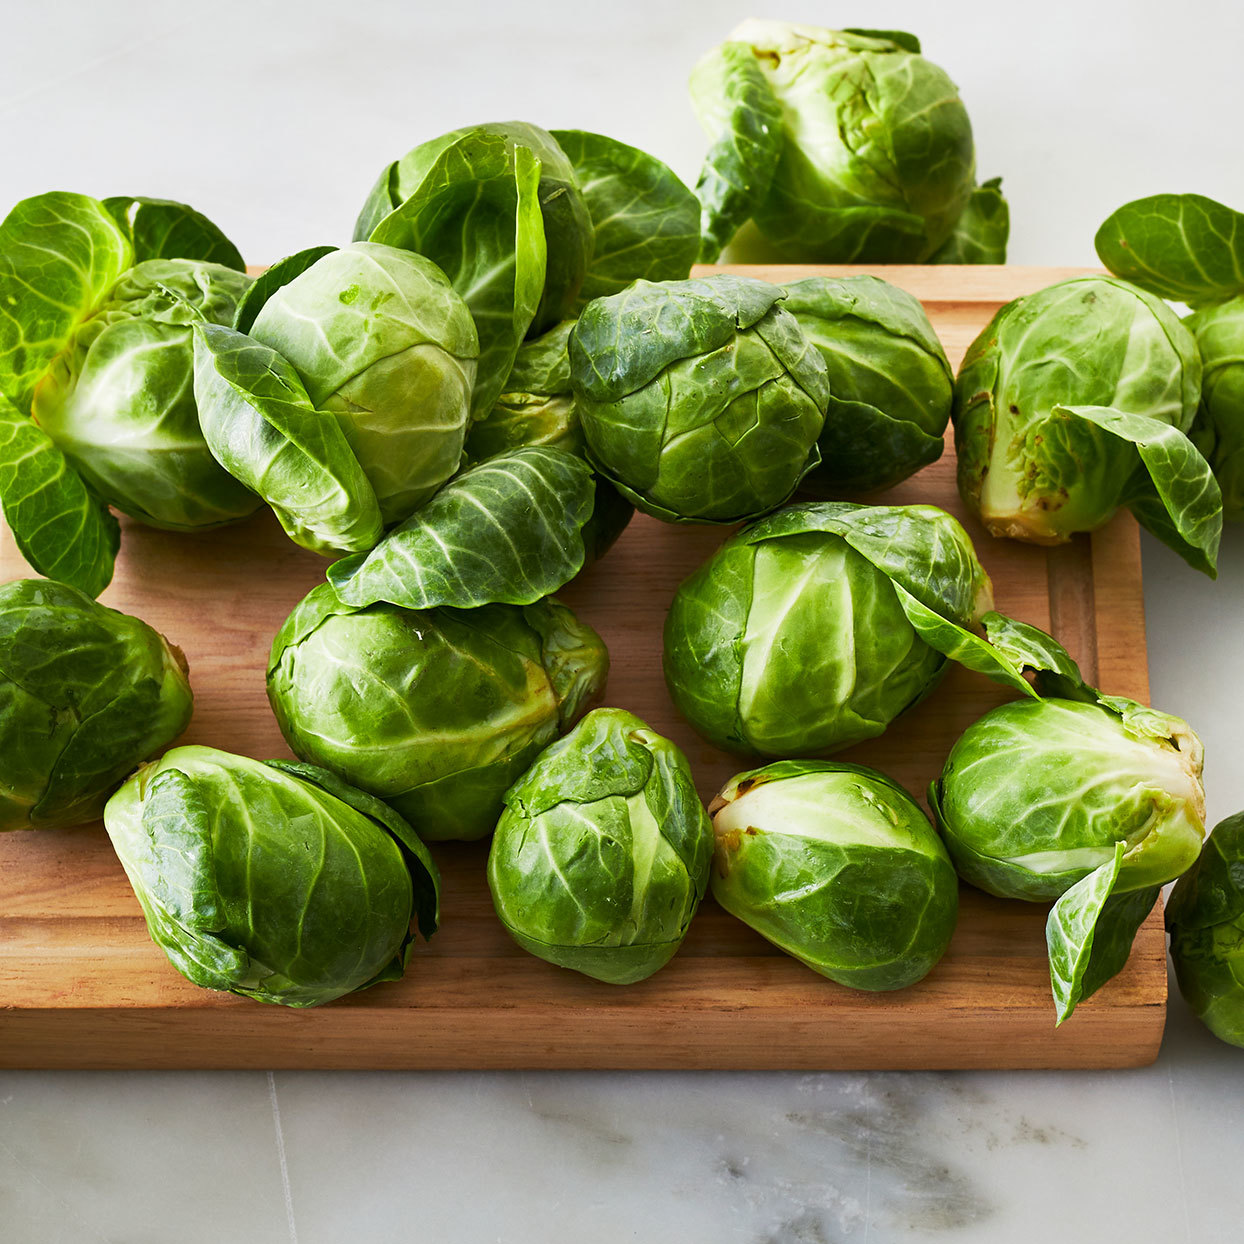 6 Reasons to Eat More Brussels Sprouts